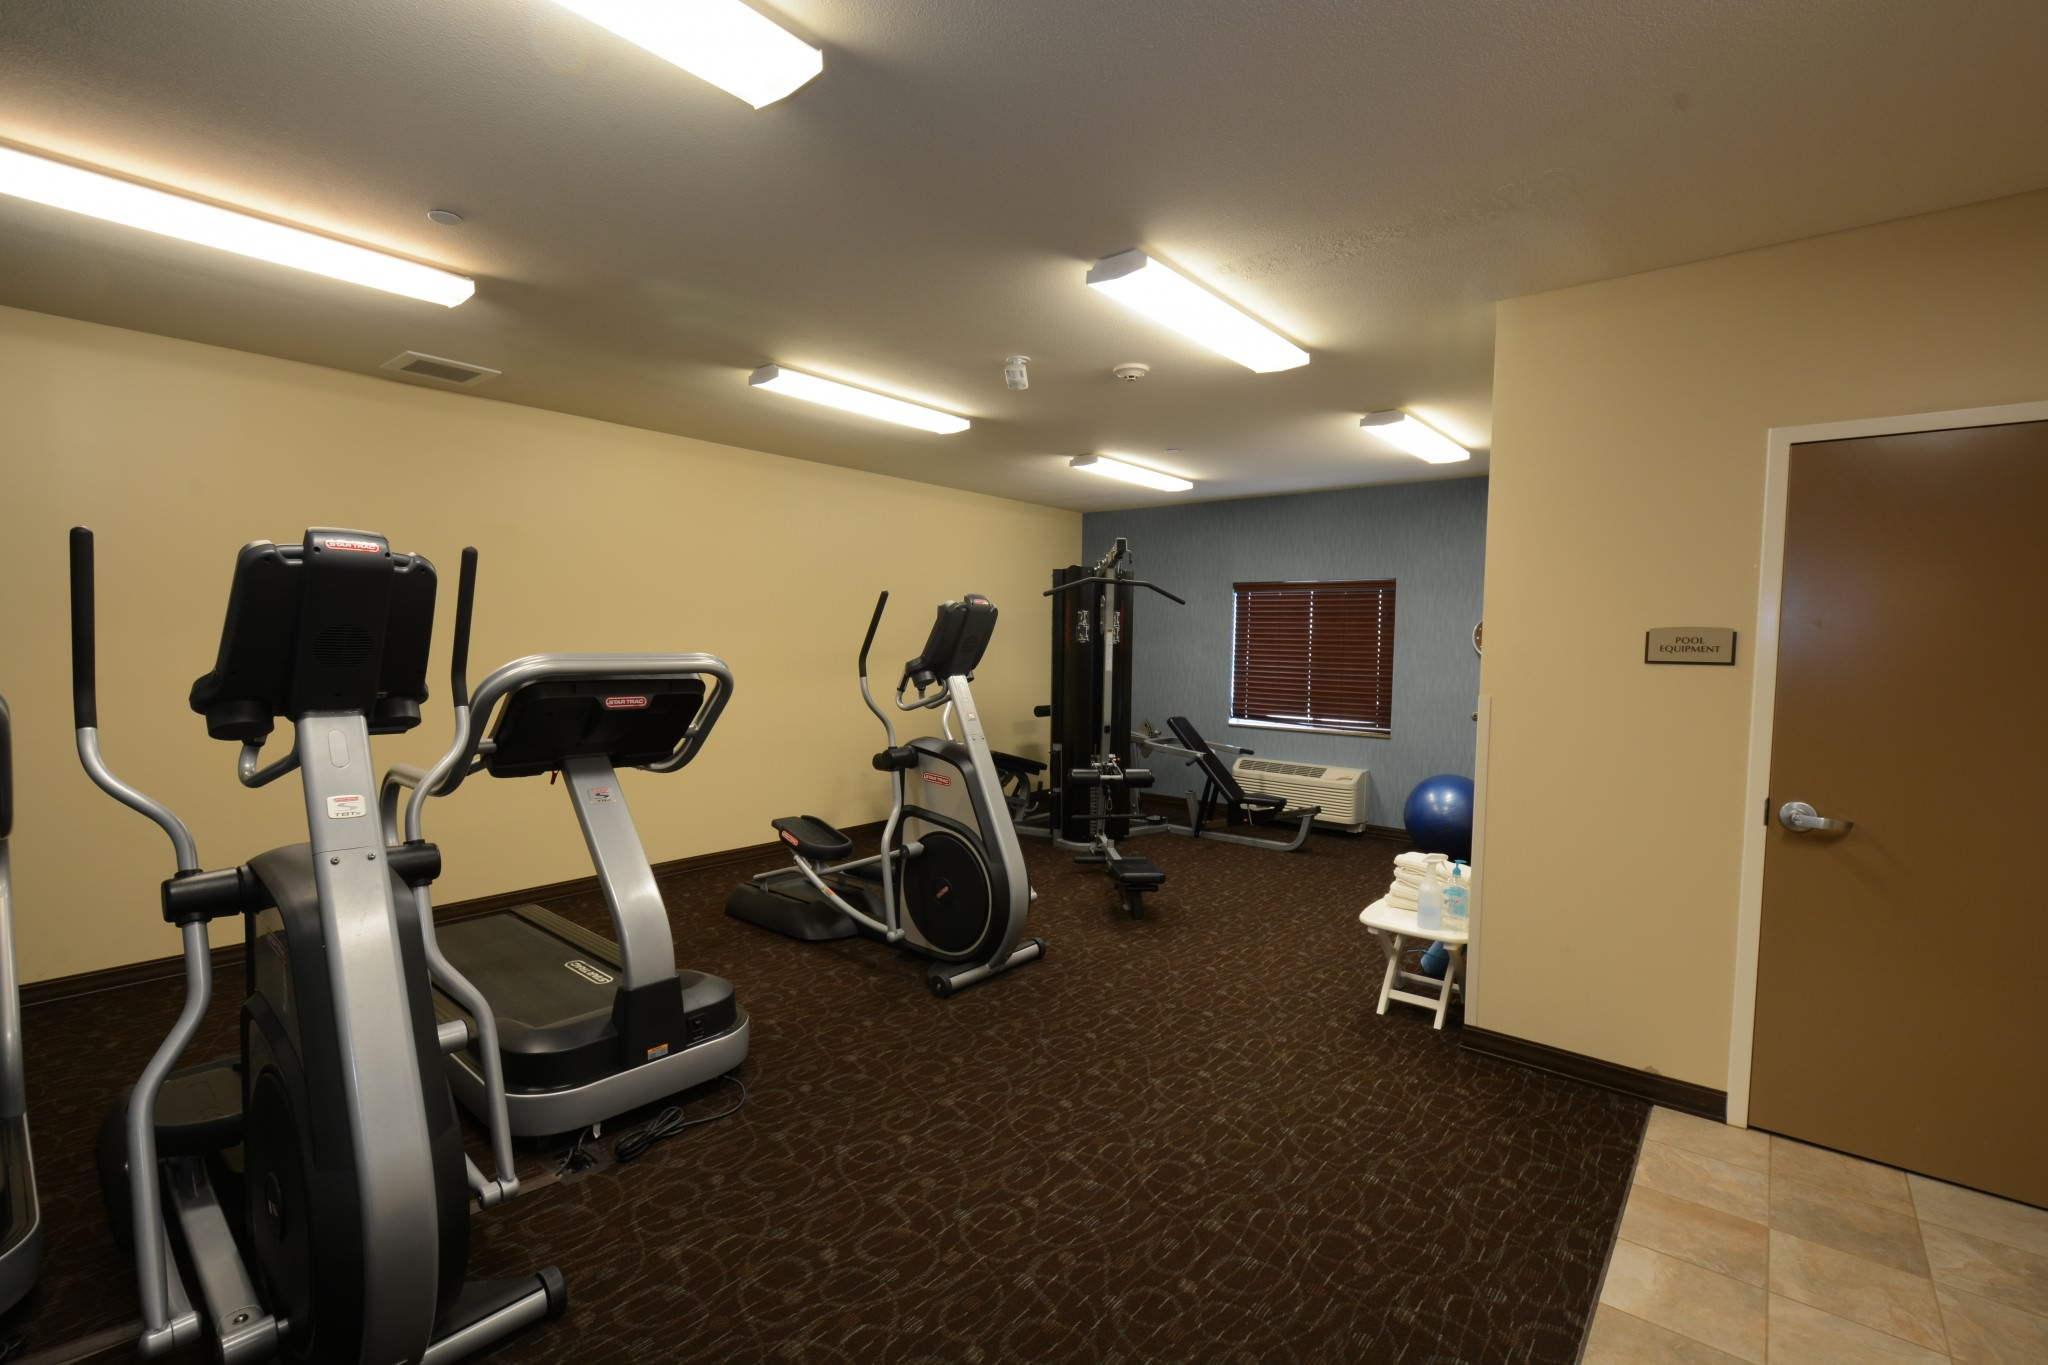 HomStay exercise room